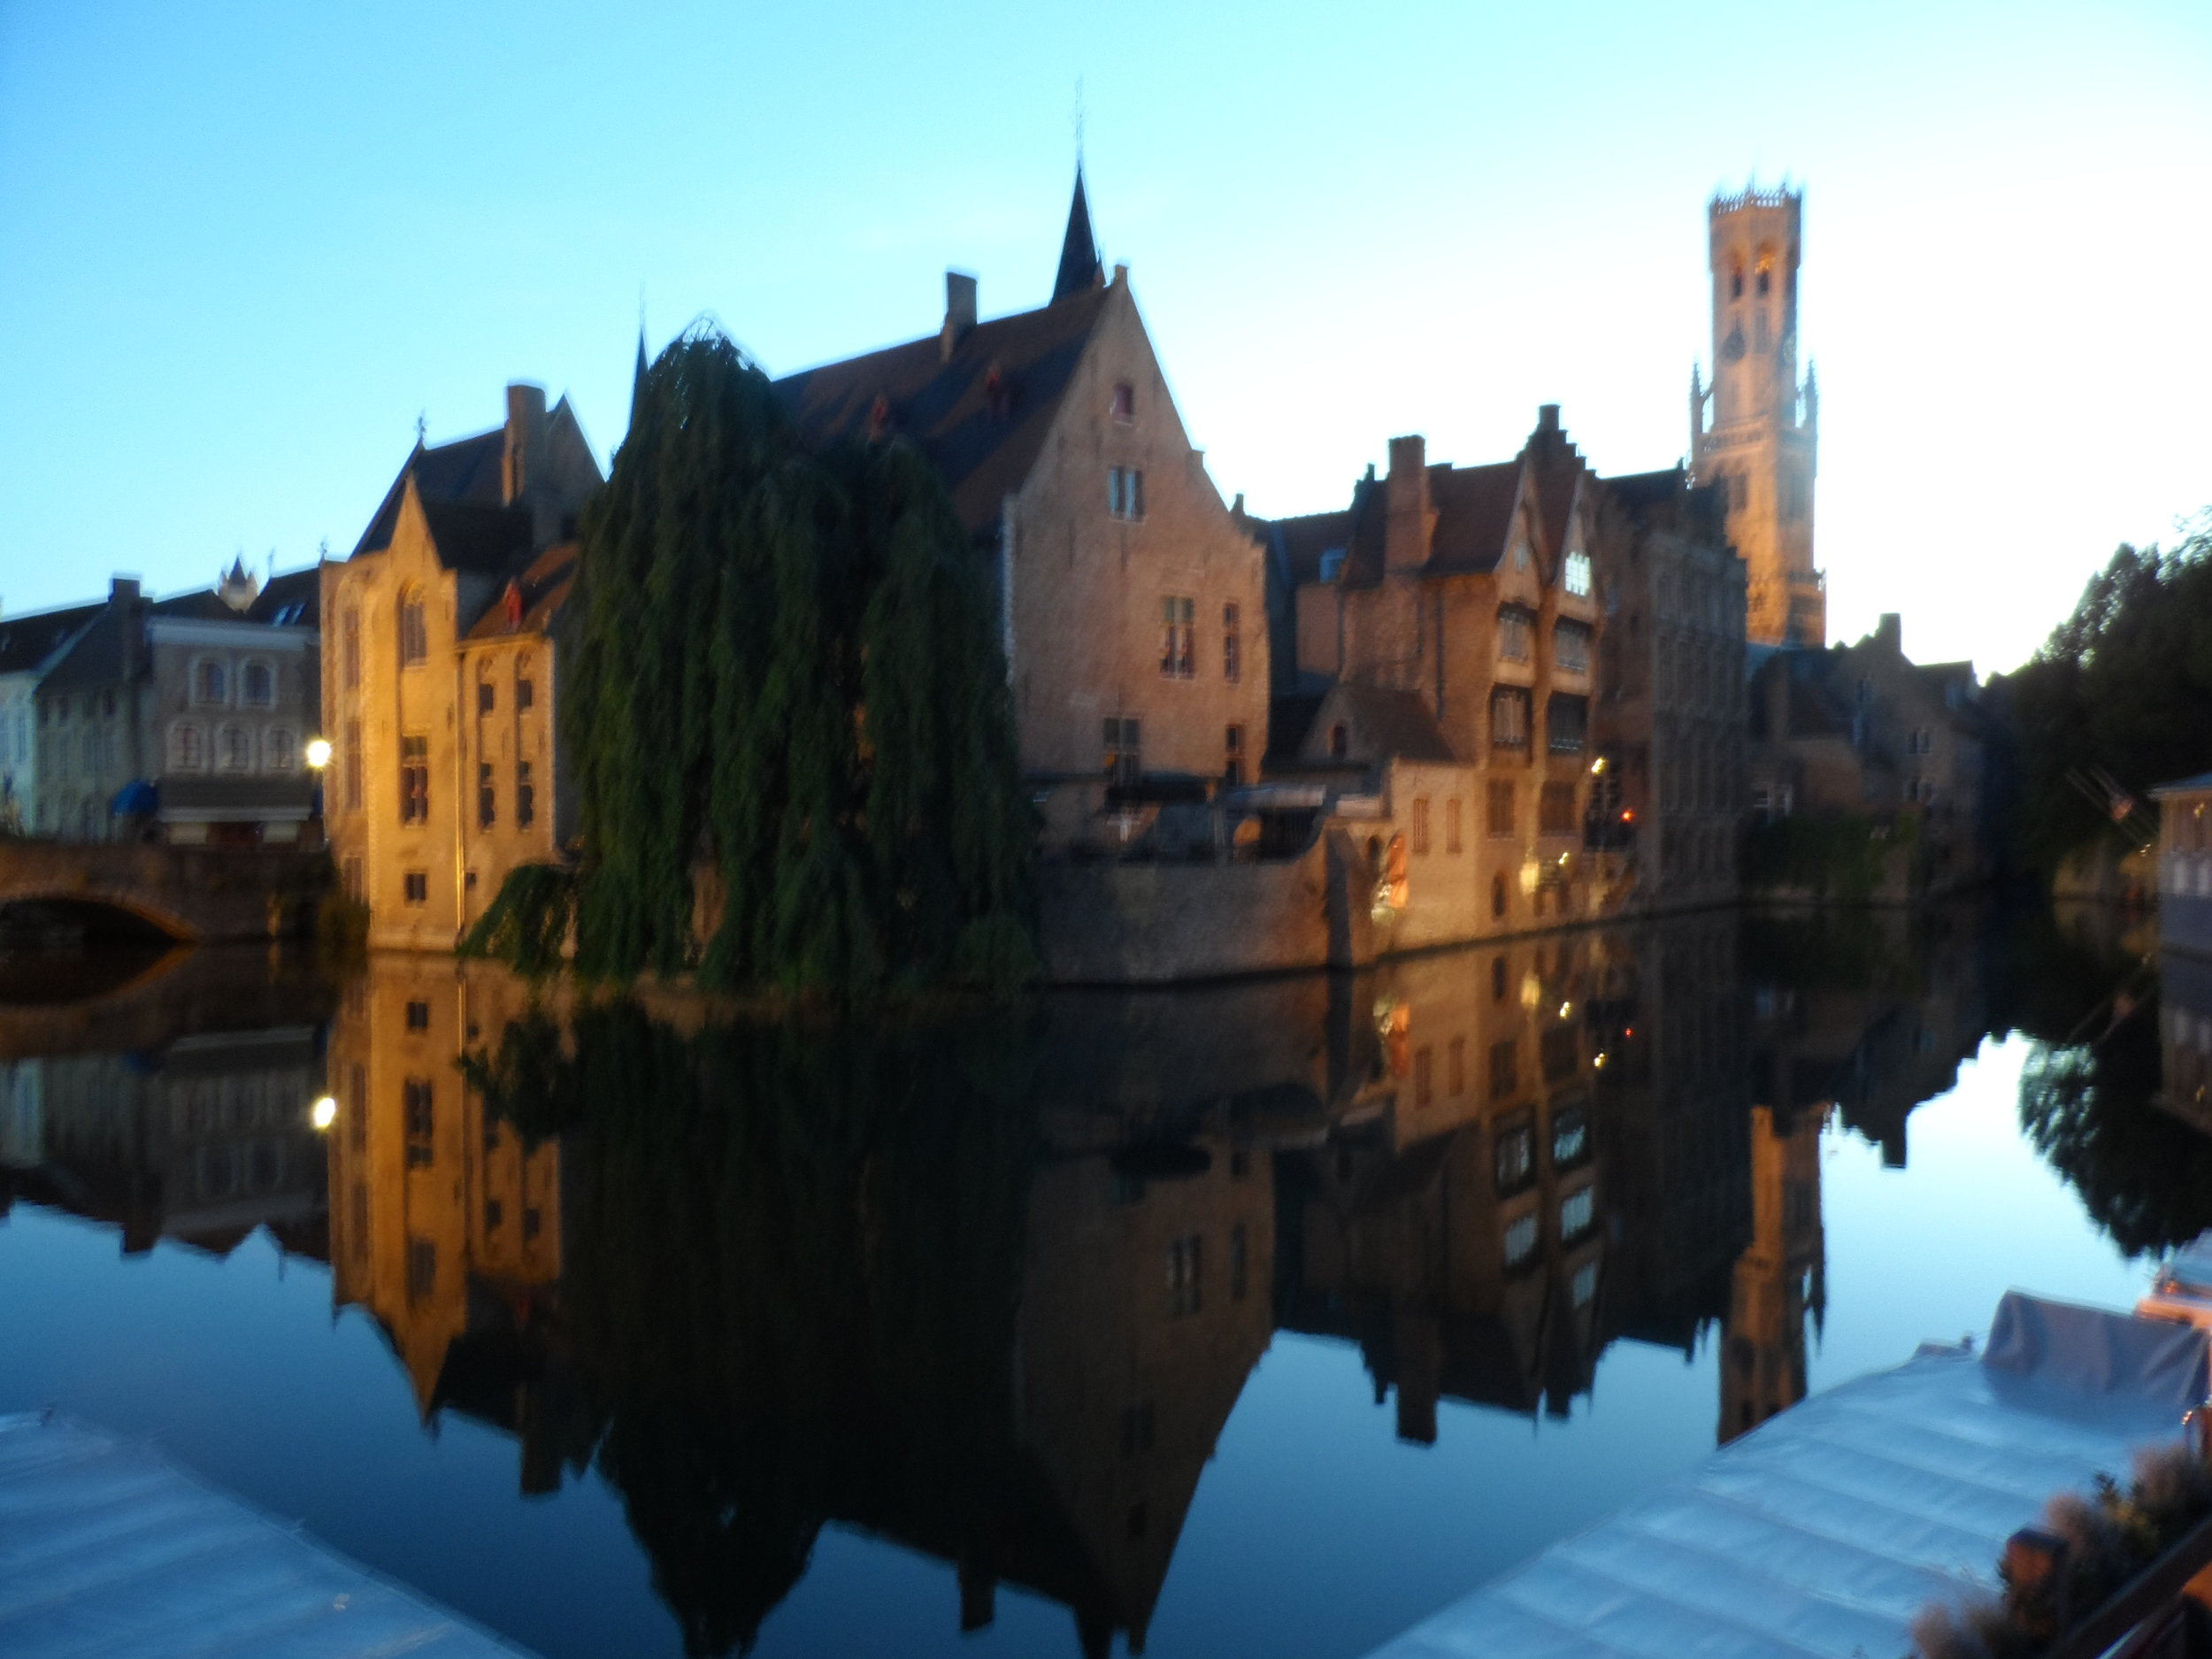 Brugge at dusk—so picture perfect!